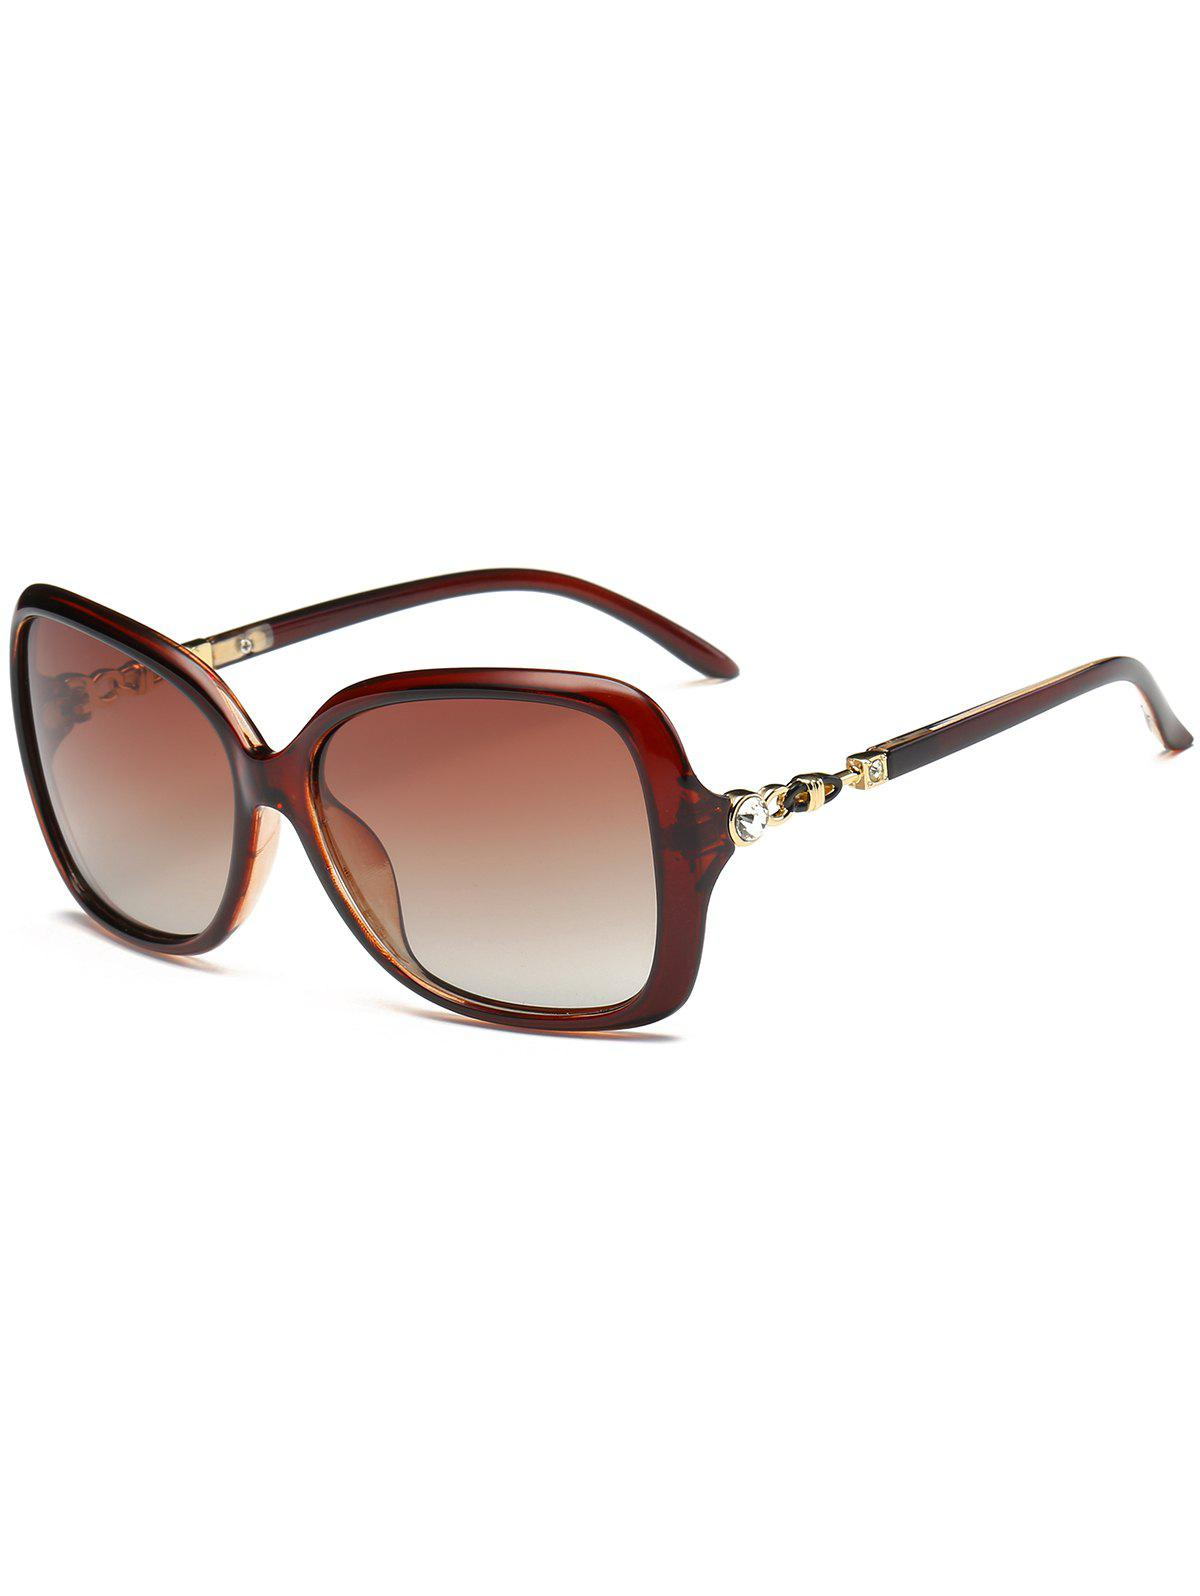 Anti-fatigue Rhinestone Inlay Oversized Driver Sunglasses - TEA COLORED